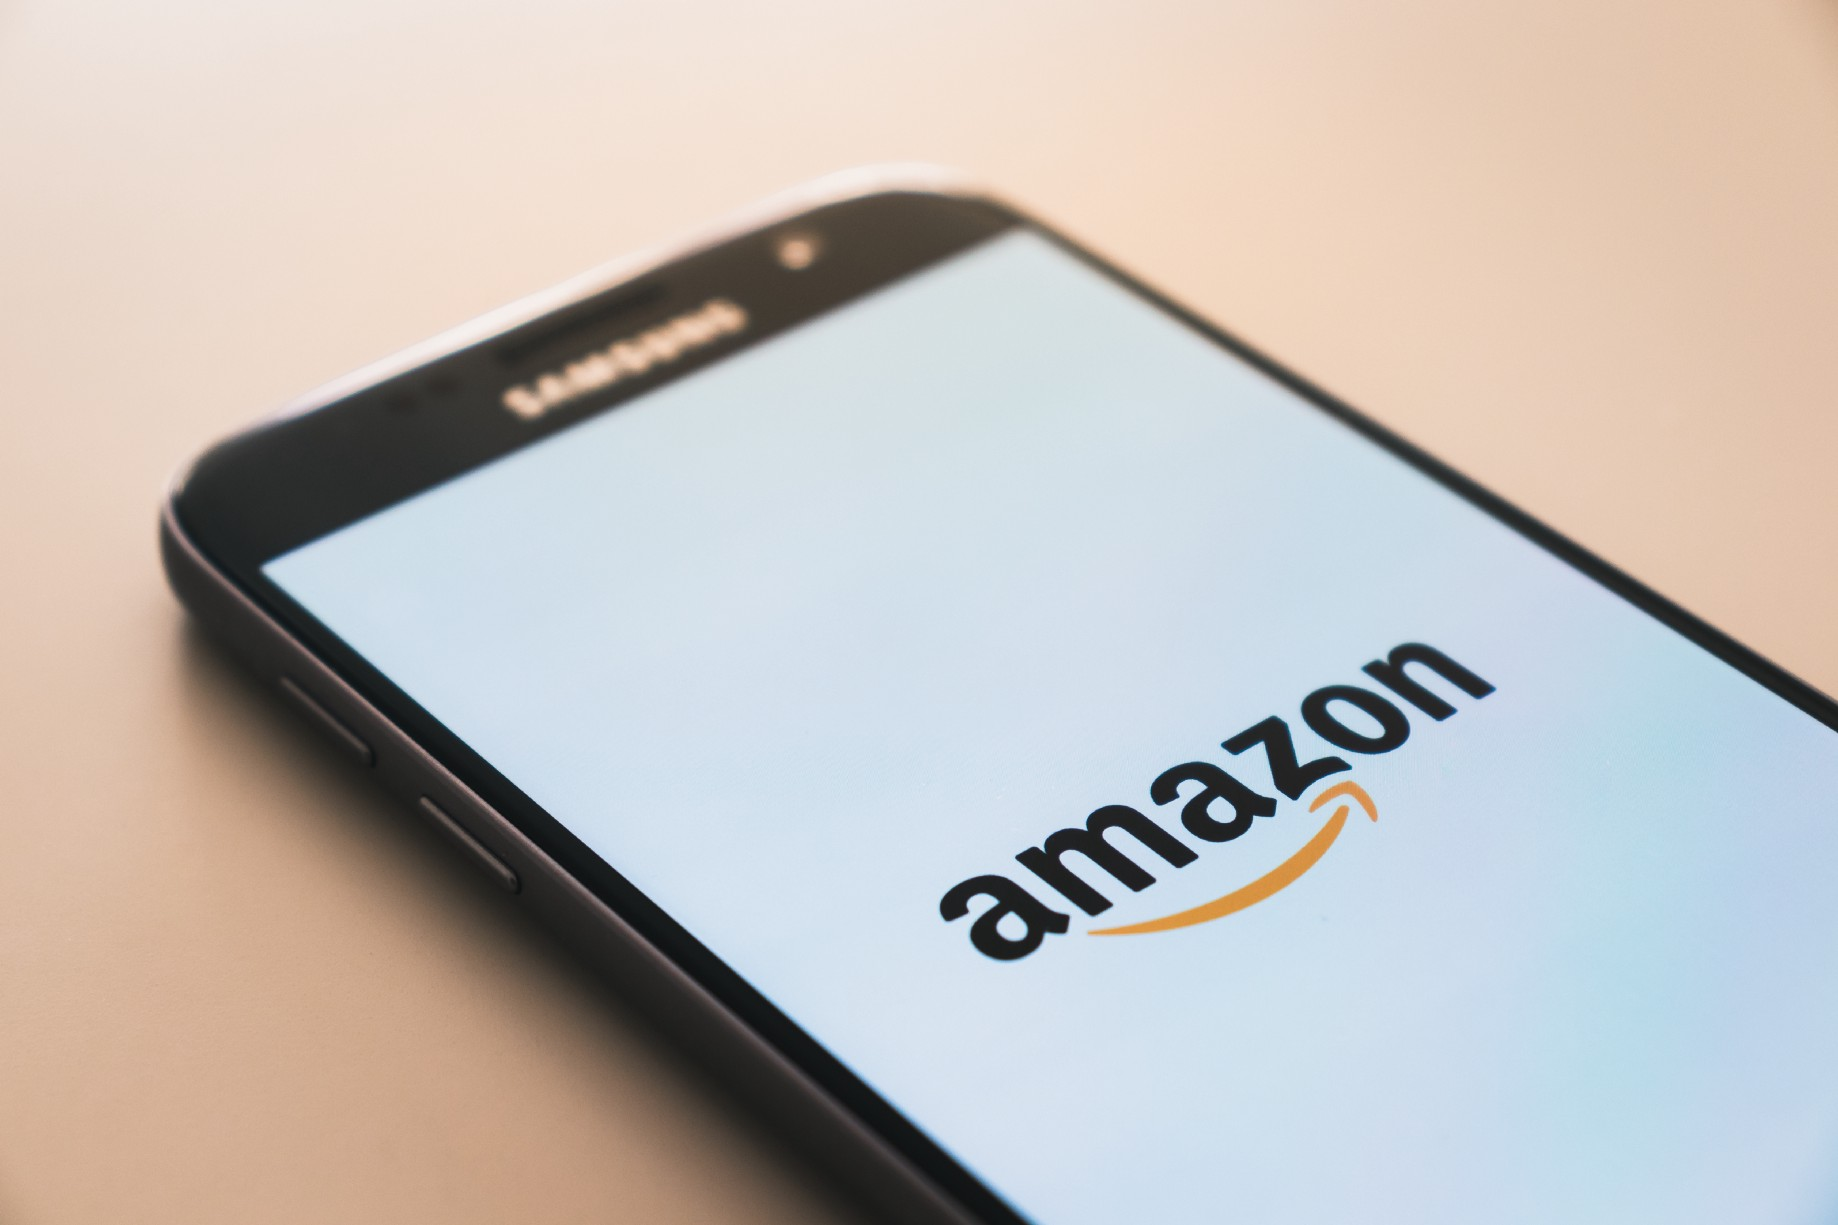 Amazon Campus Online Test Questions - Shubham Kumar - Medium